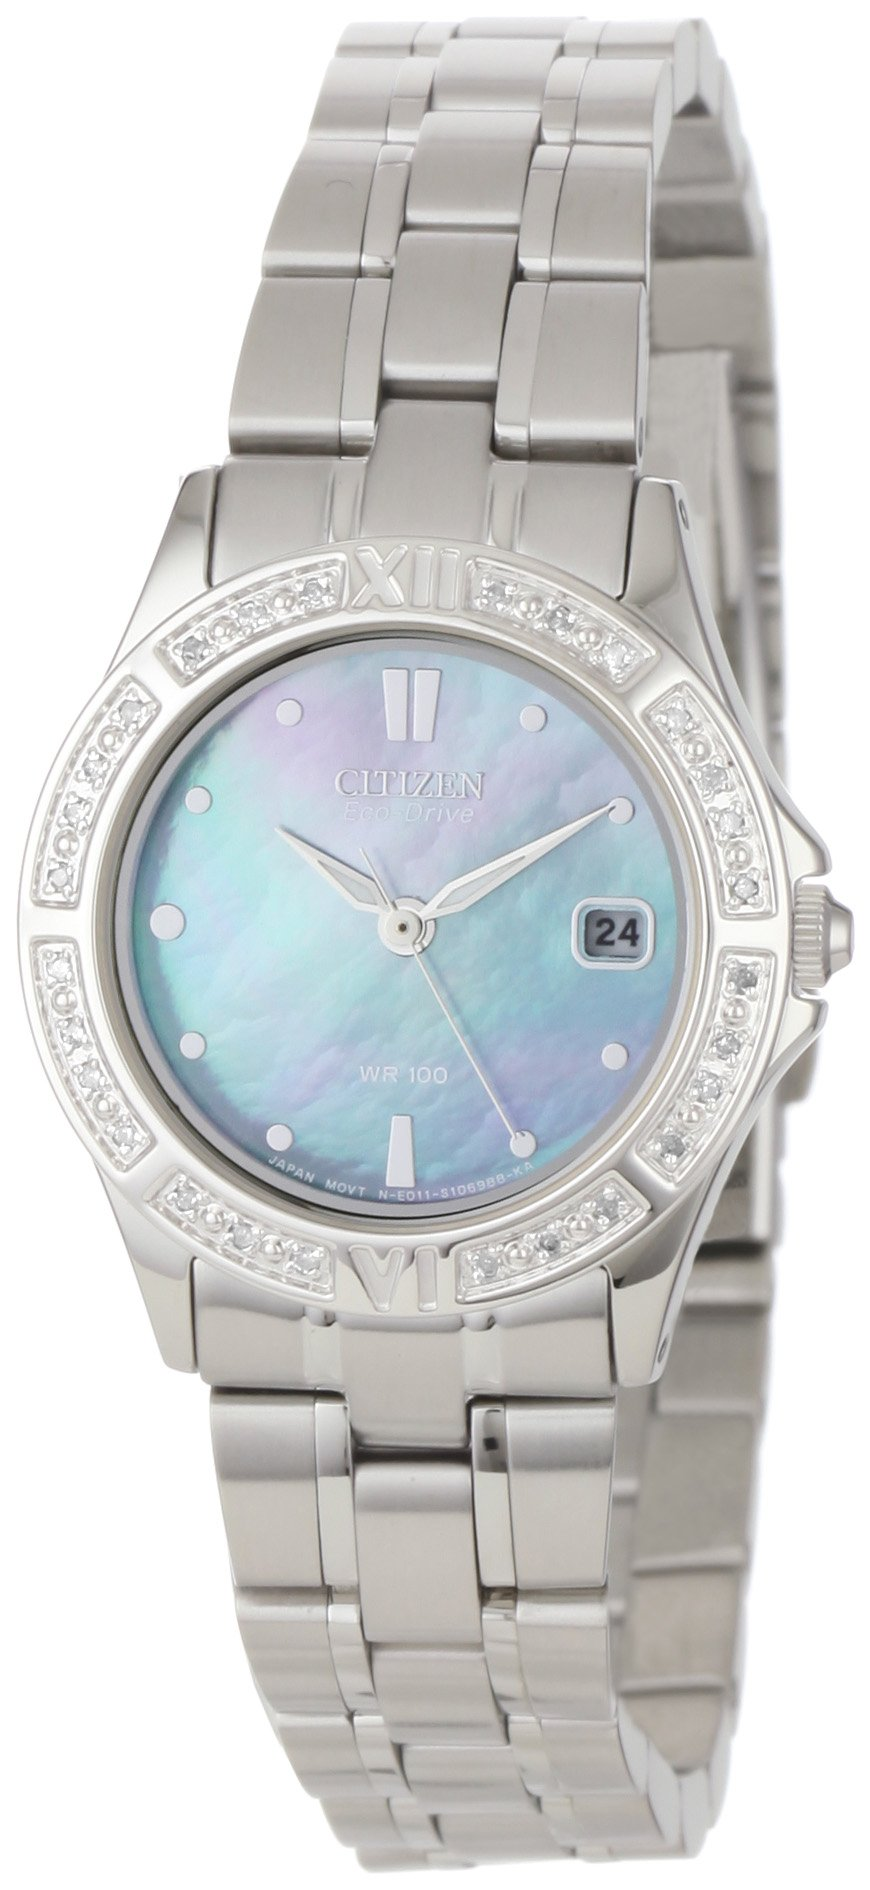 Citizen Women's EW1710-56Y Elektra Eco Drive Watch